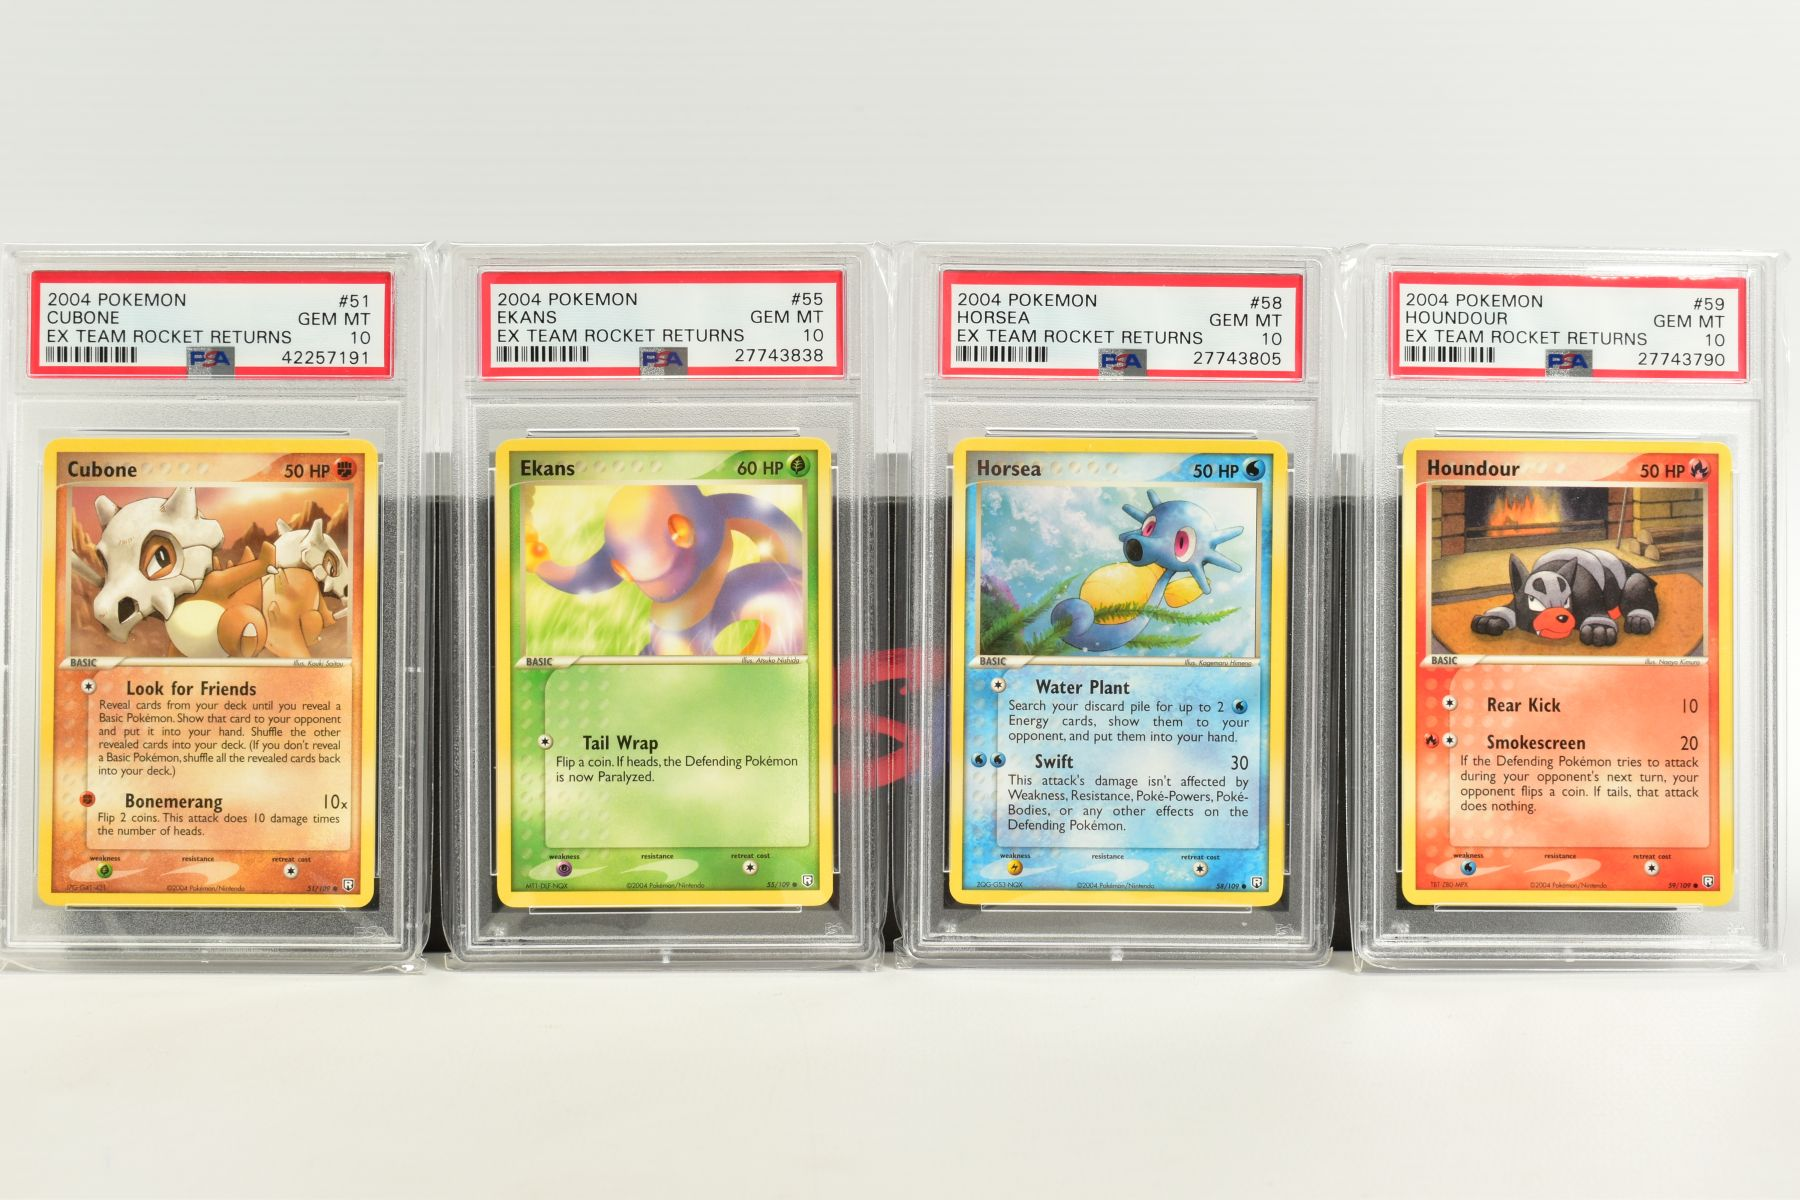 A QUANTITY OF PSA GRADED POKEMON EX TEAM ROCKET RETURNS AND EX RUBY & SAPPHIRE SET CARDS, all are - Image 7 of 15